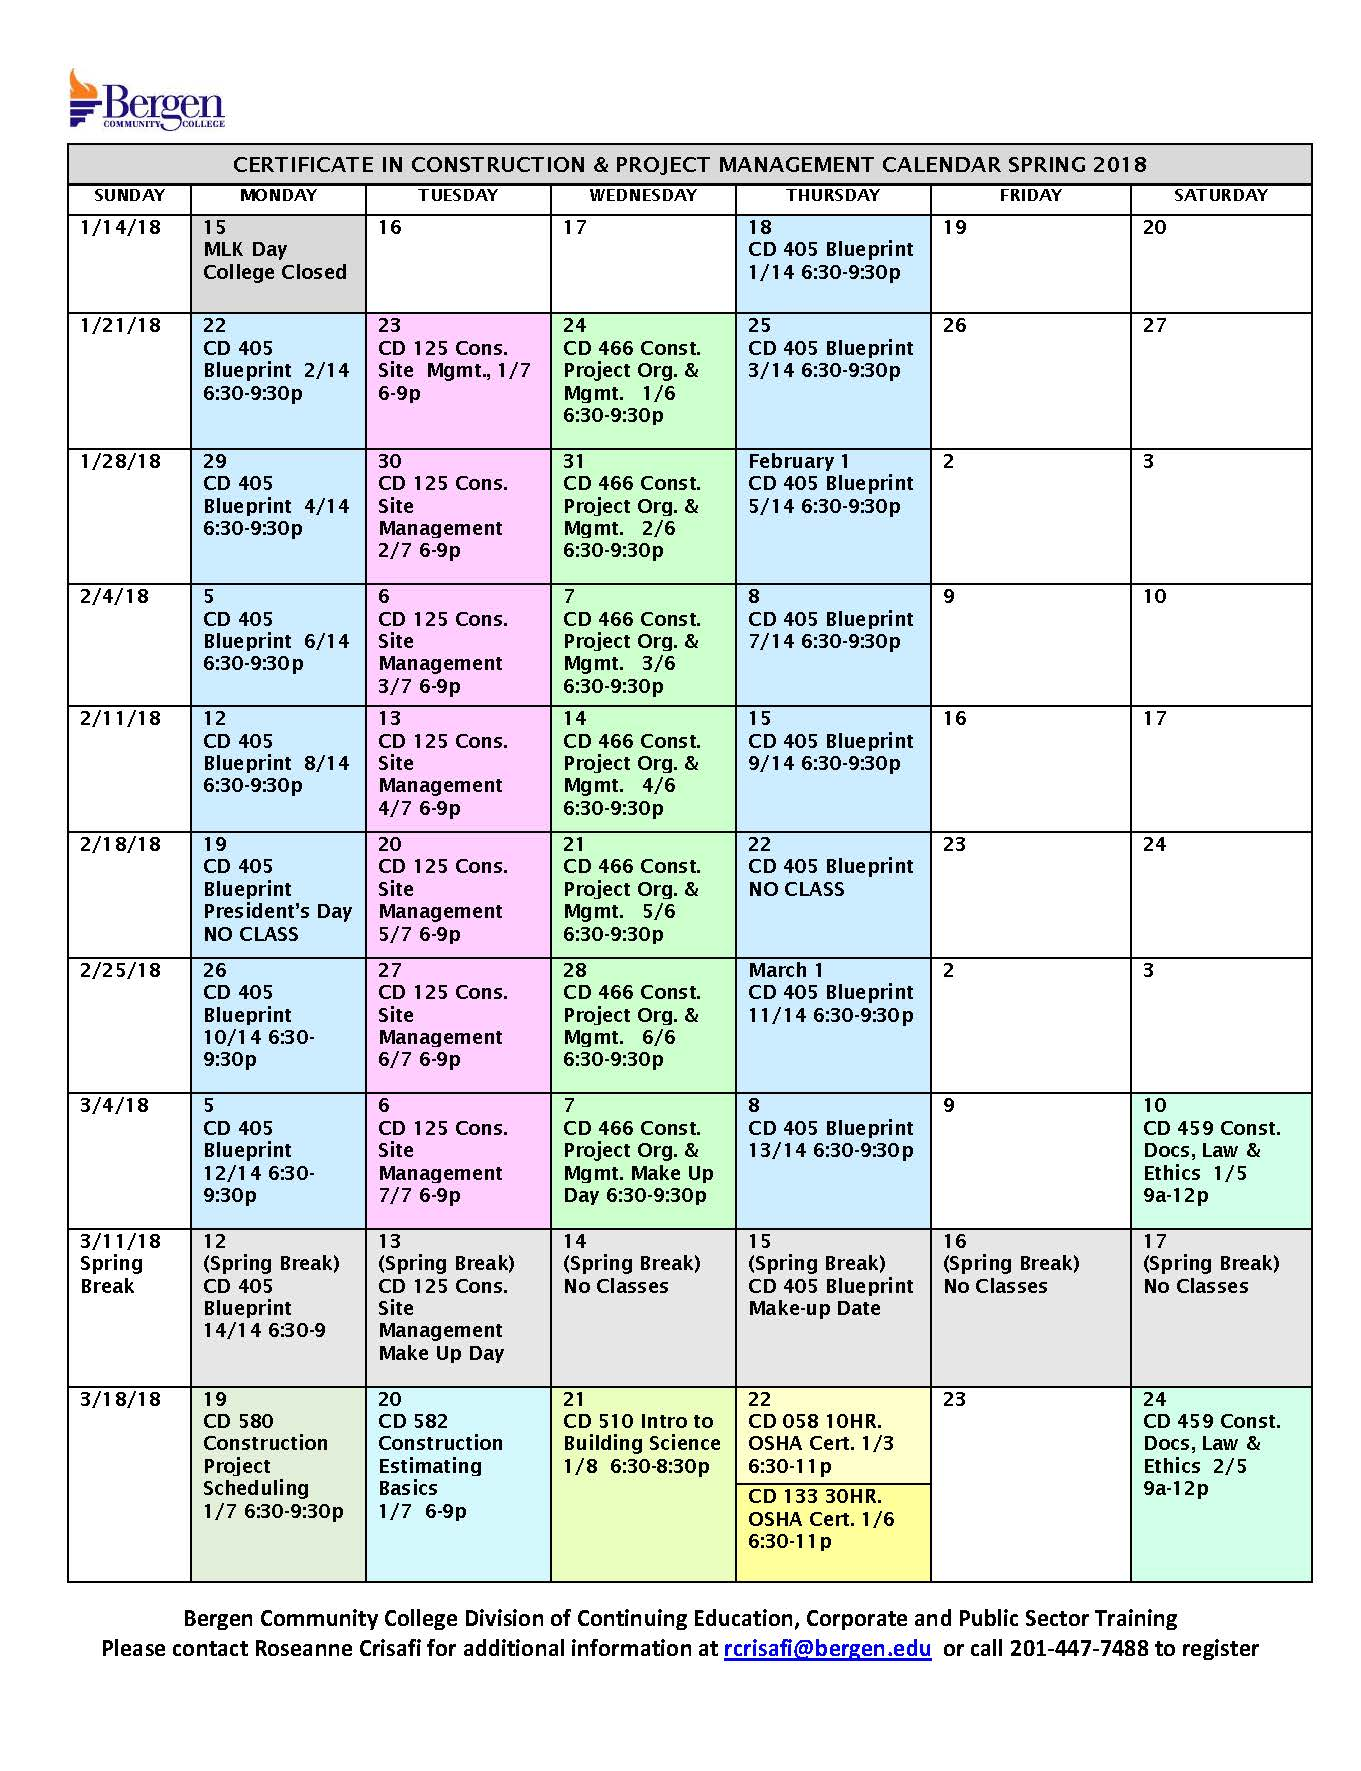 Bergen Community College Course Calendar Certificate In